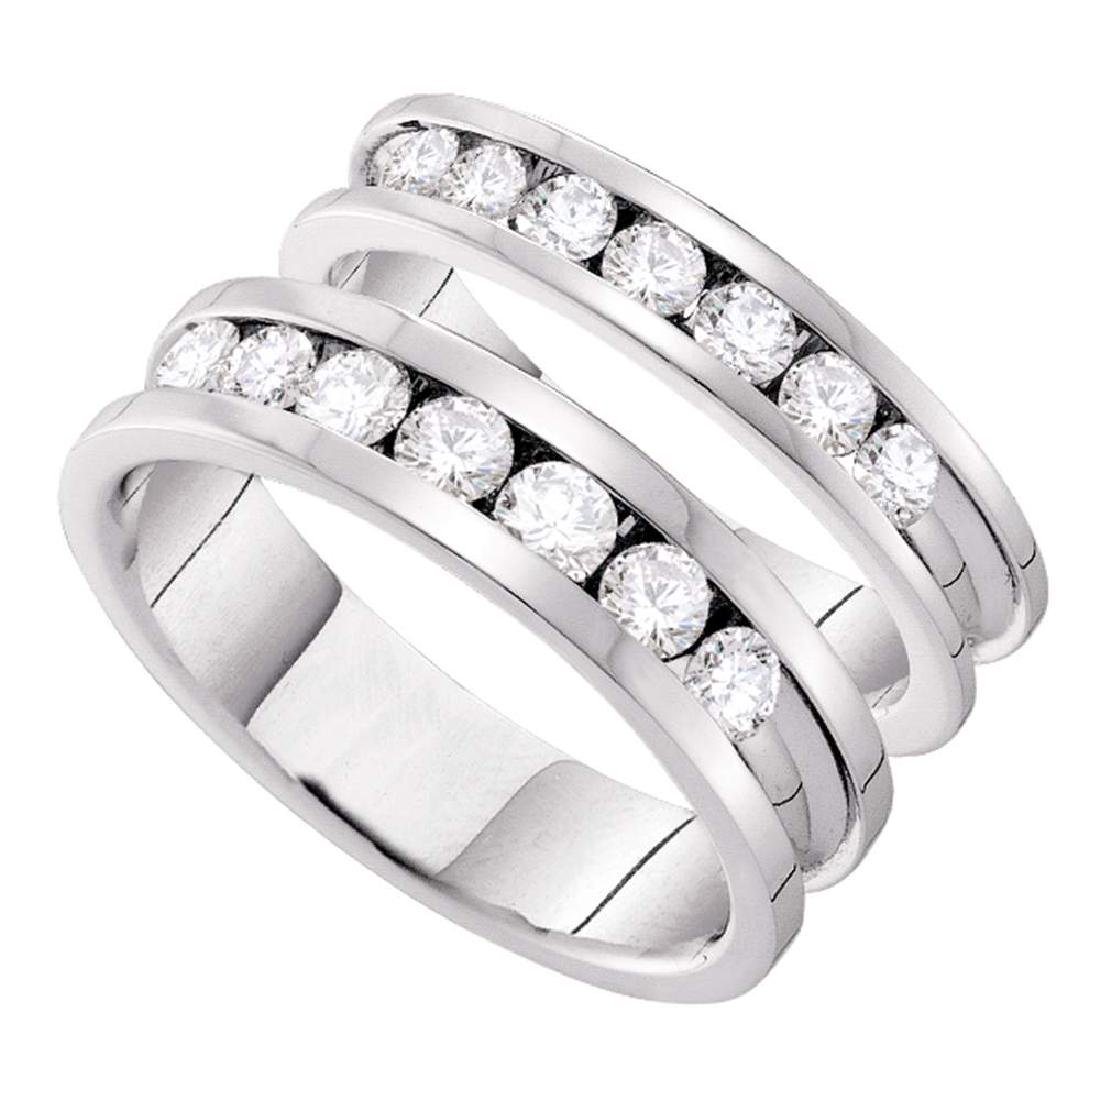 1.55 CTW His & Hers Diamond Matching Bridal Ring 14KT